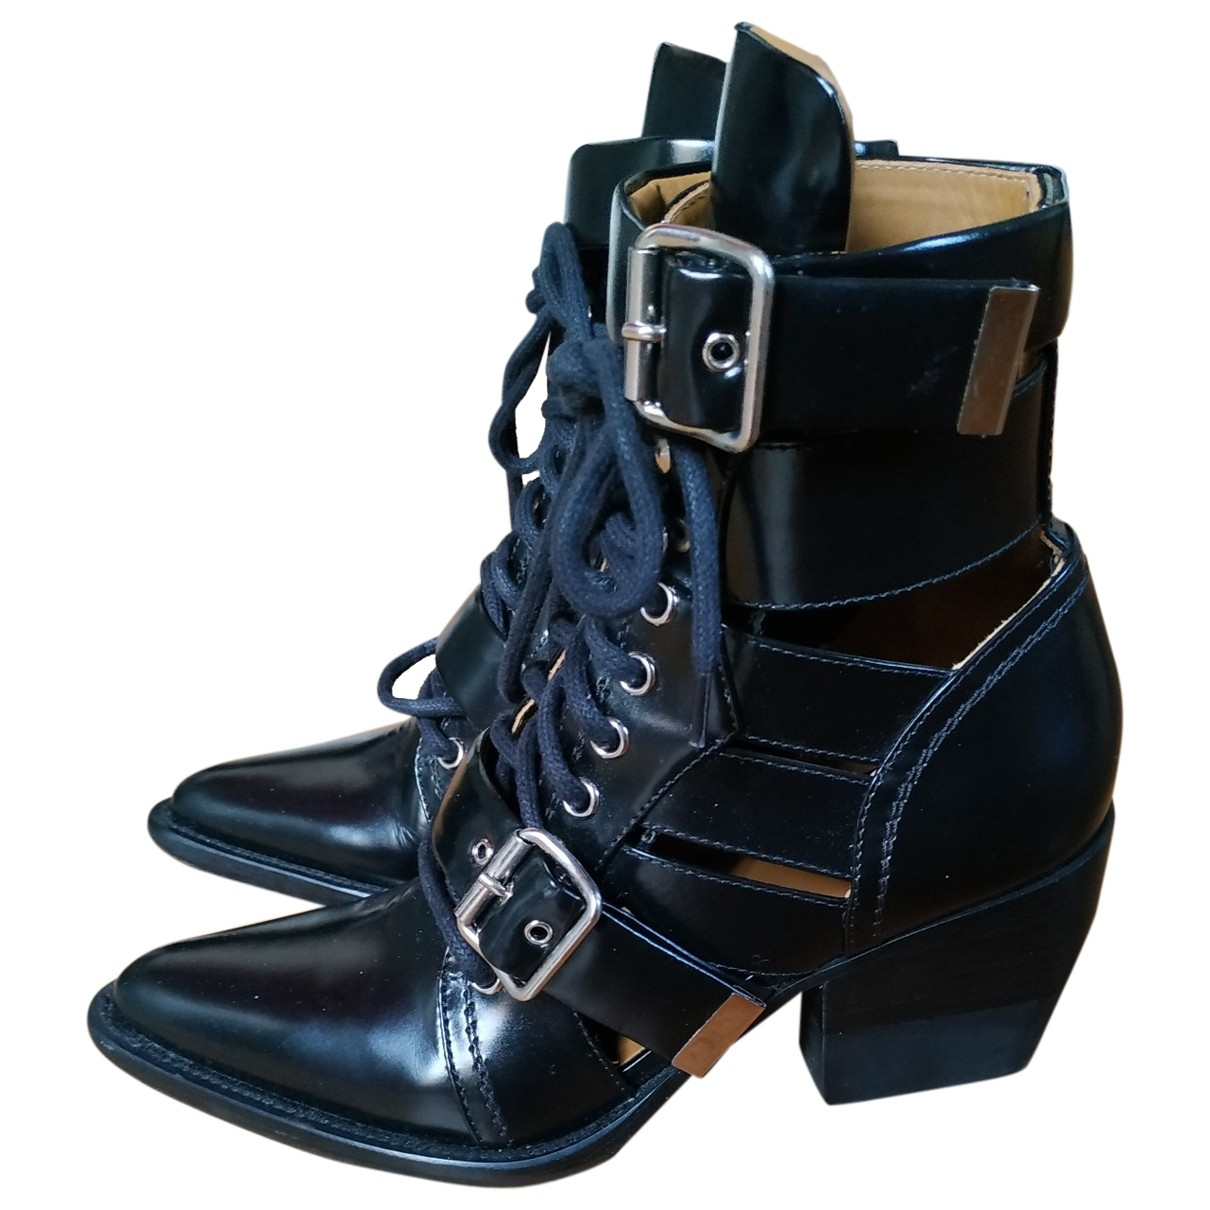 Chloé Rylee Black Leather Ankle boots for Women 37 EU